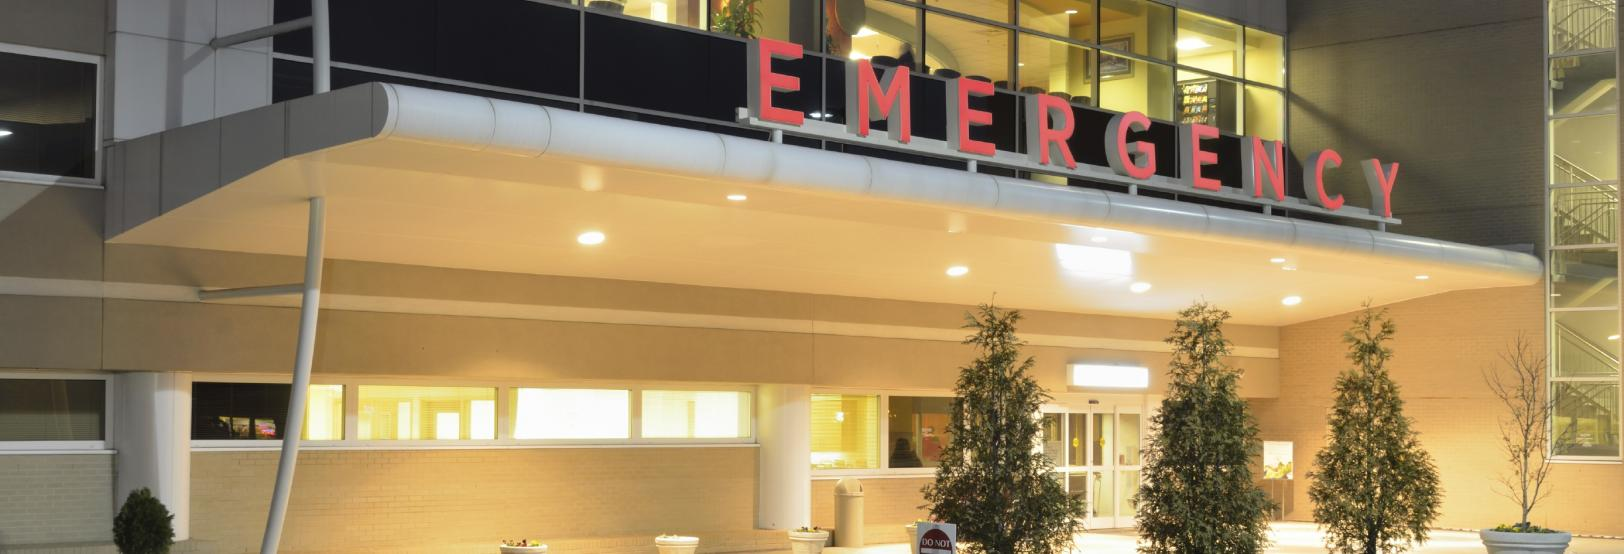 patient emergency area at hospital